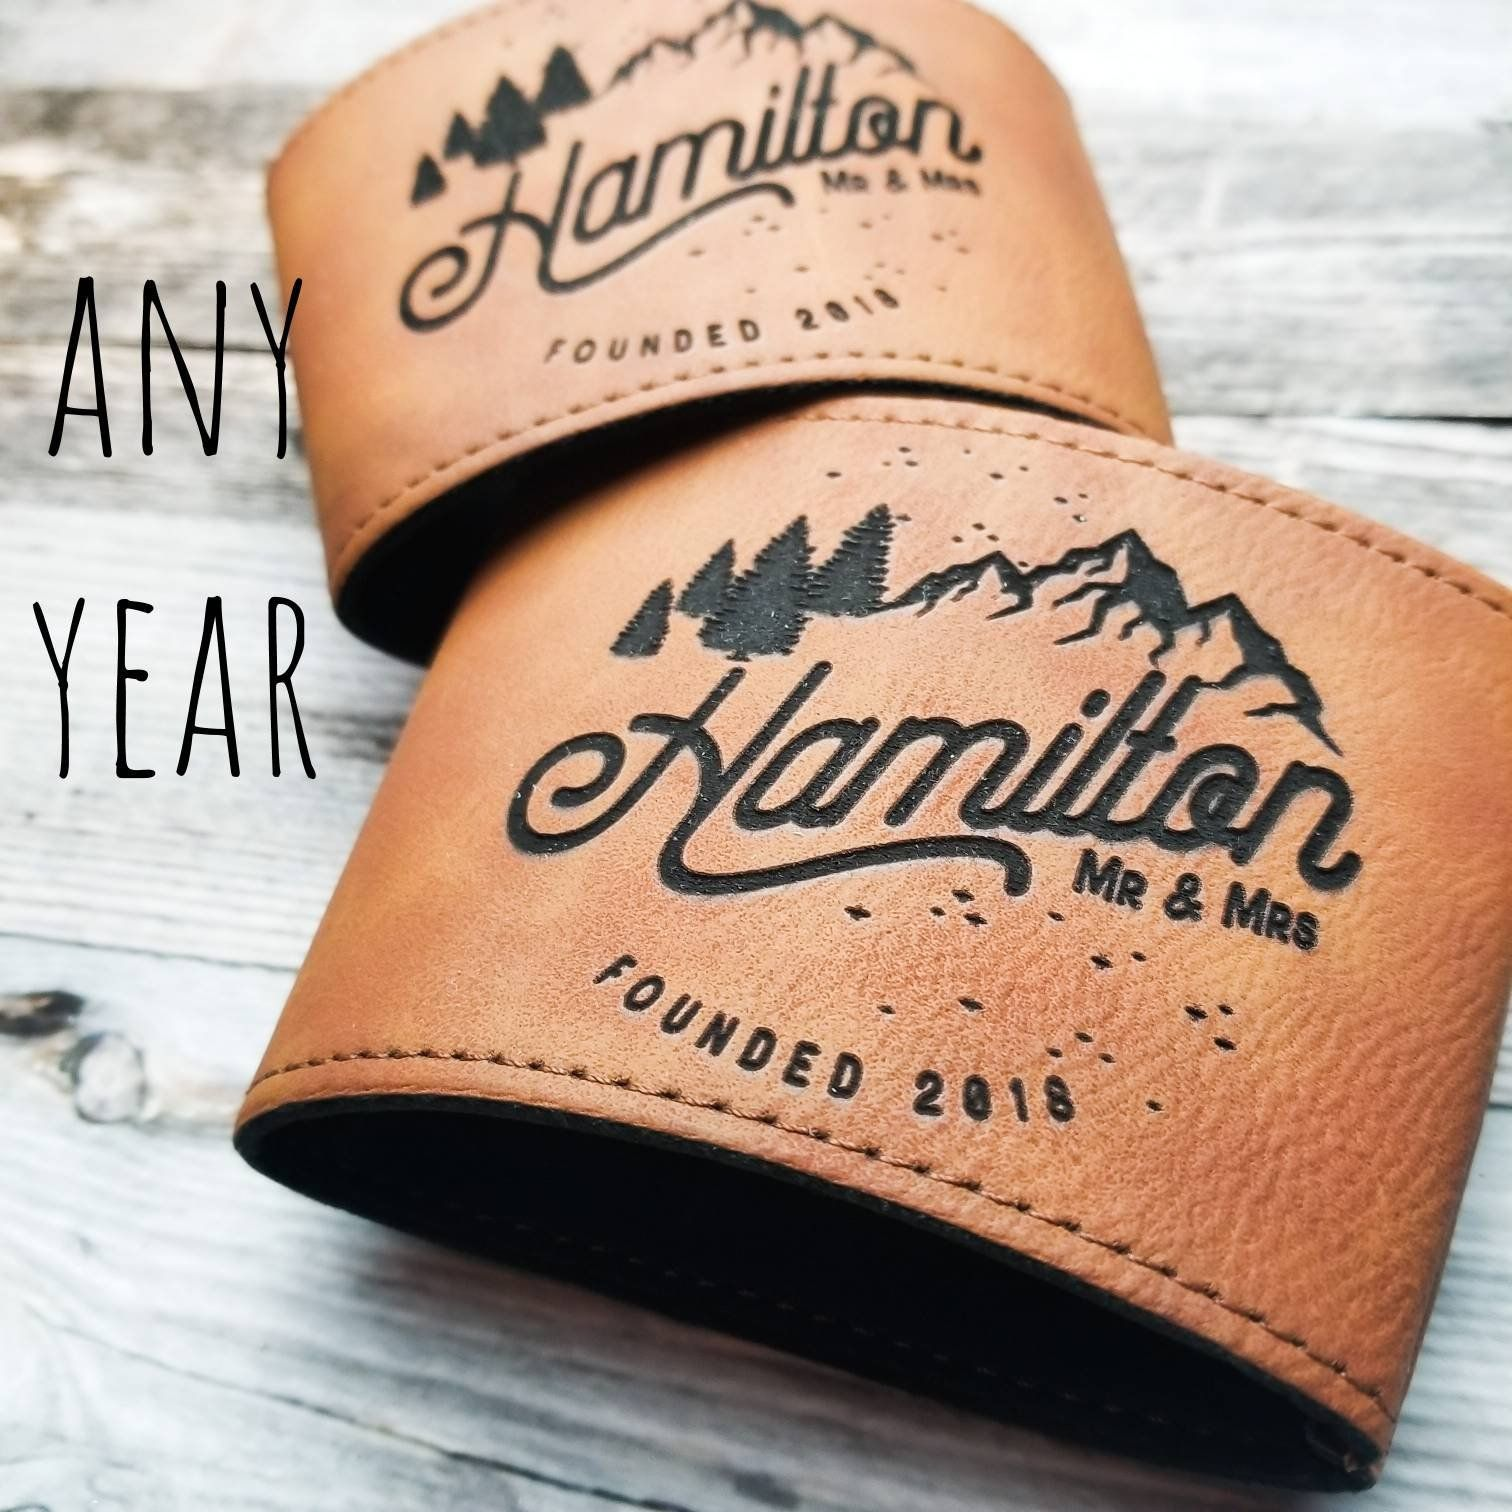 10th Anniversary Gift, Personalized Drink Sleeves